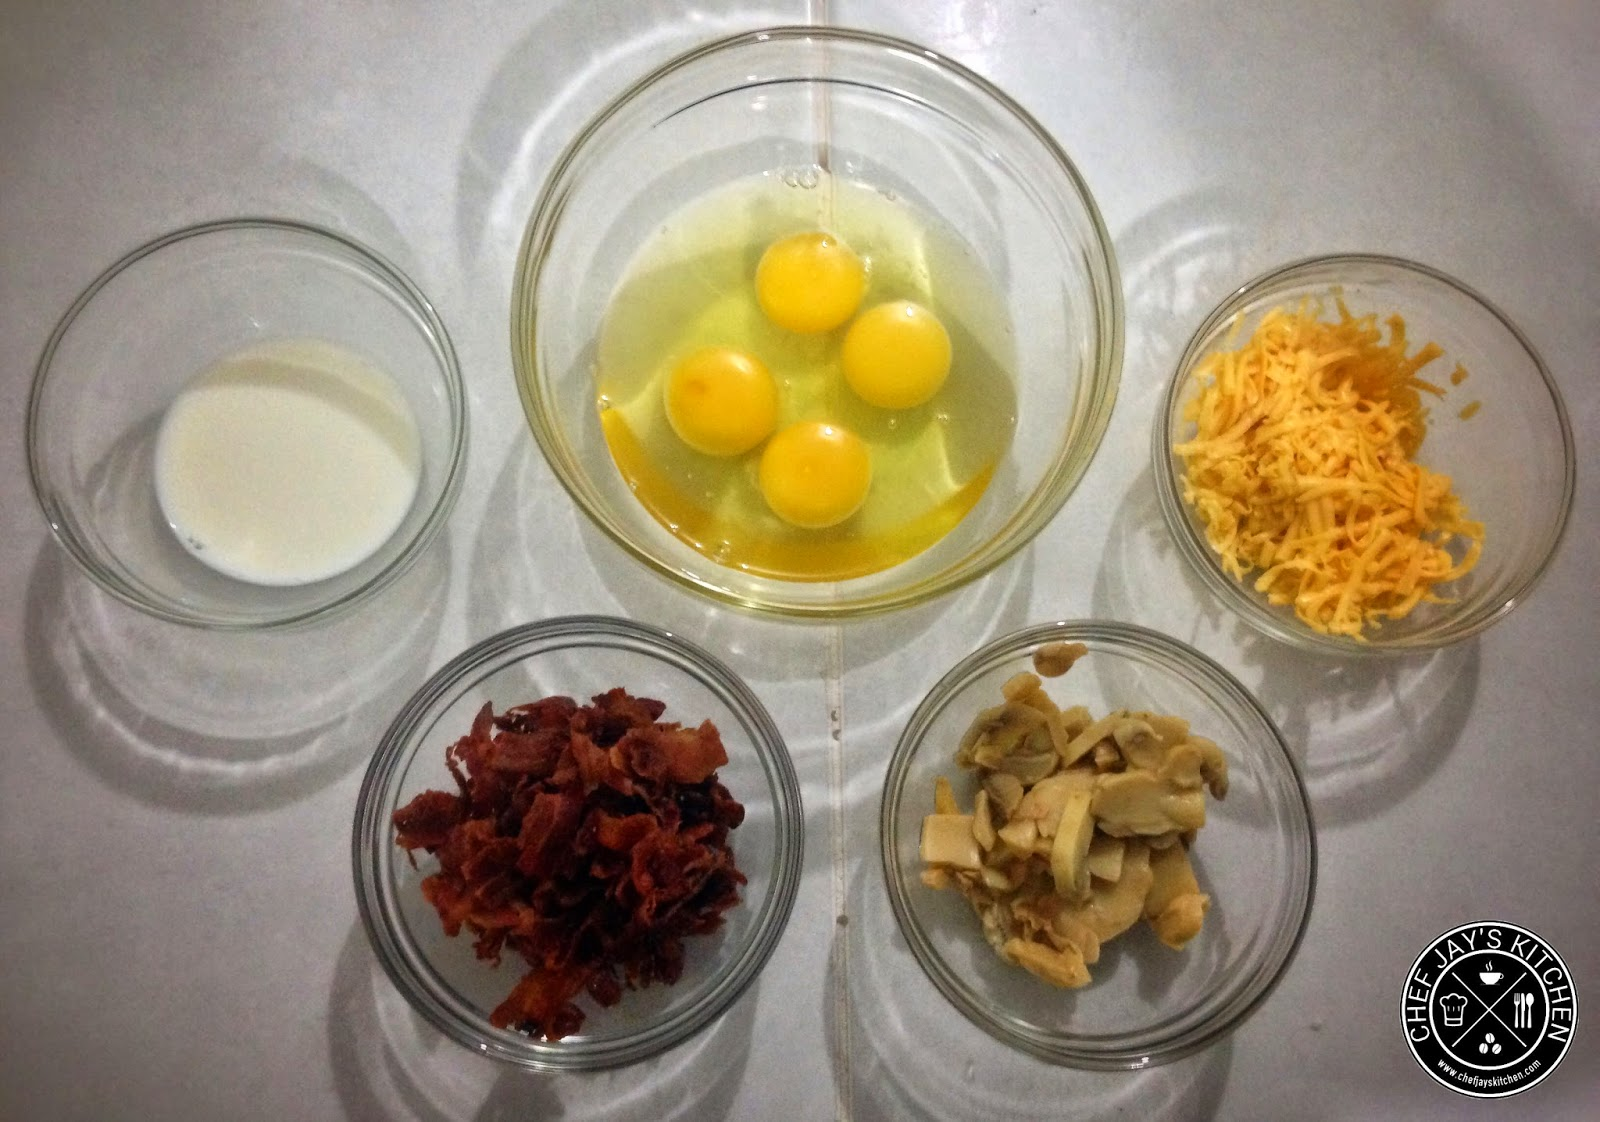 Bacon, Cheese, and Mushroom Scrambled Eggs Recipe Ingredients